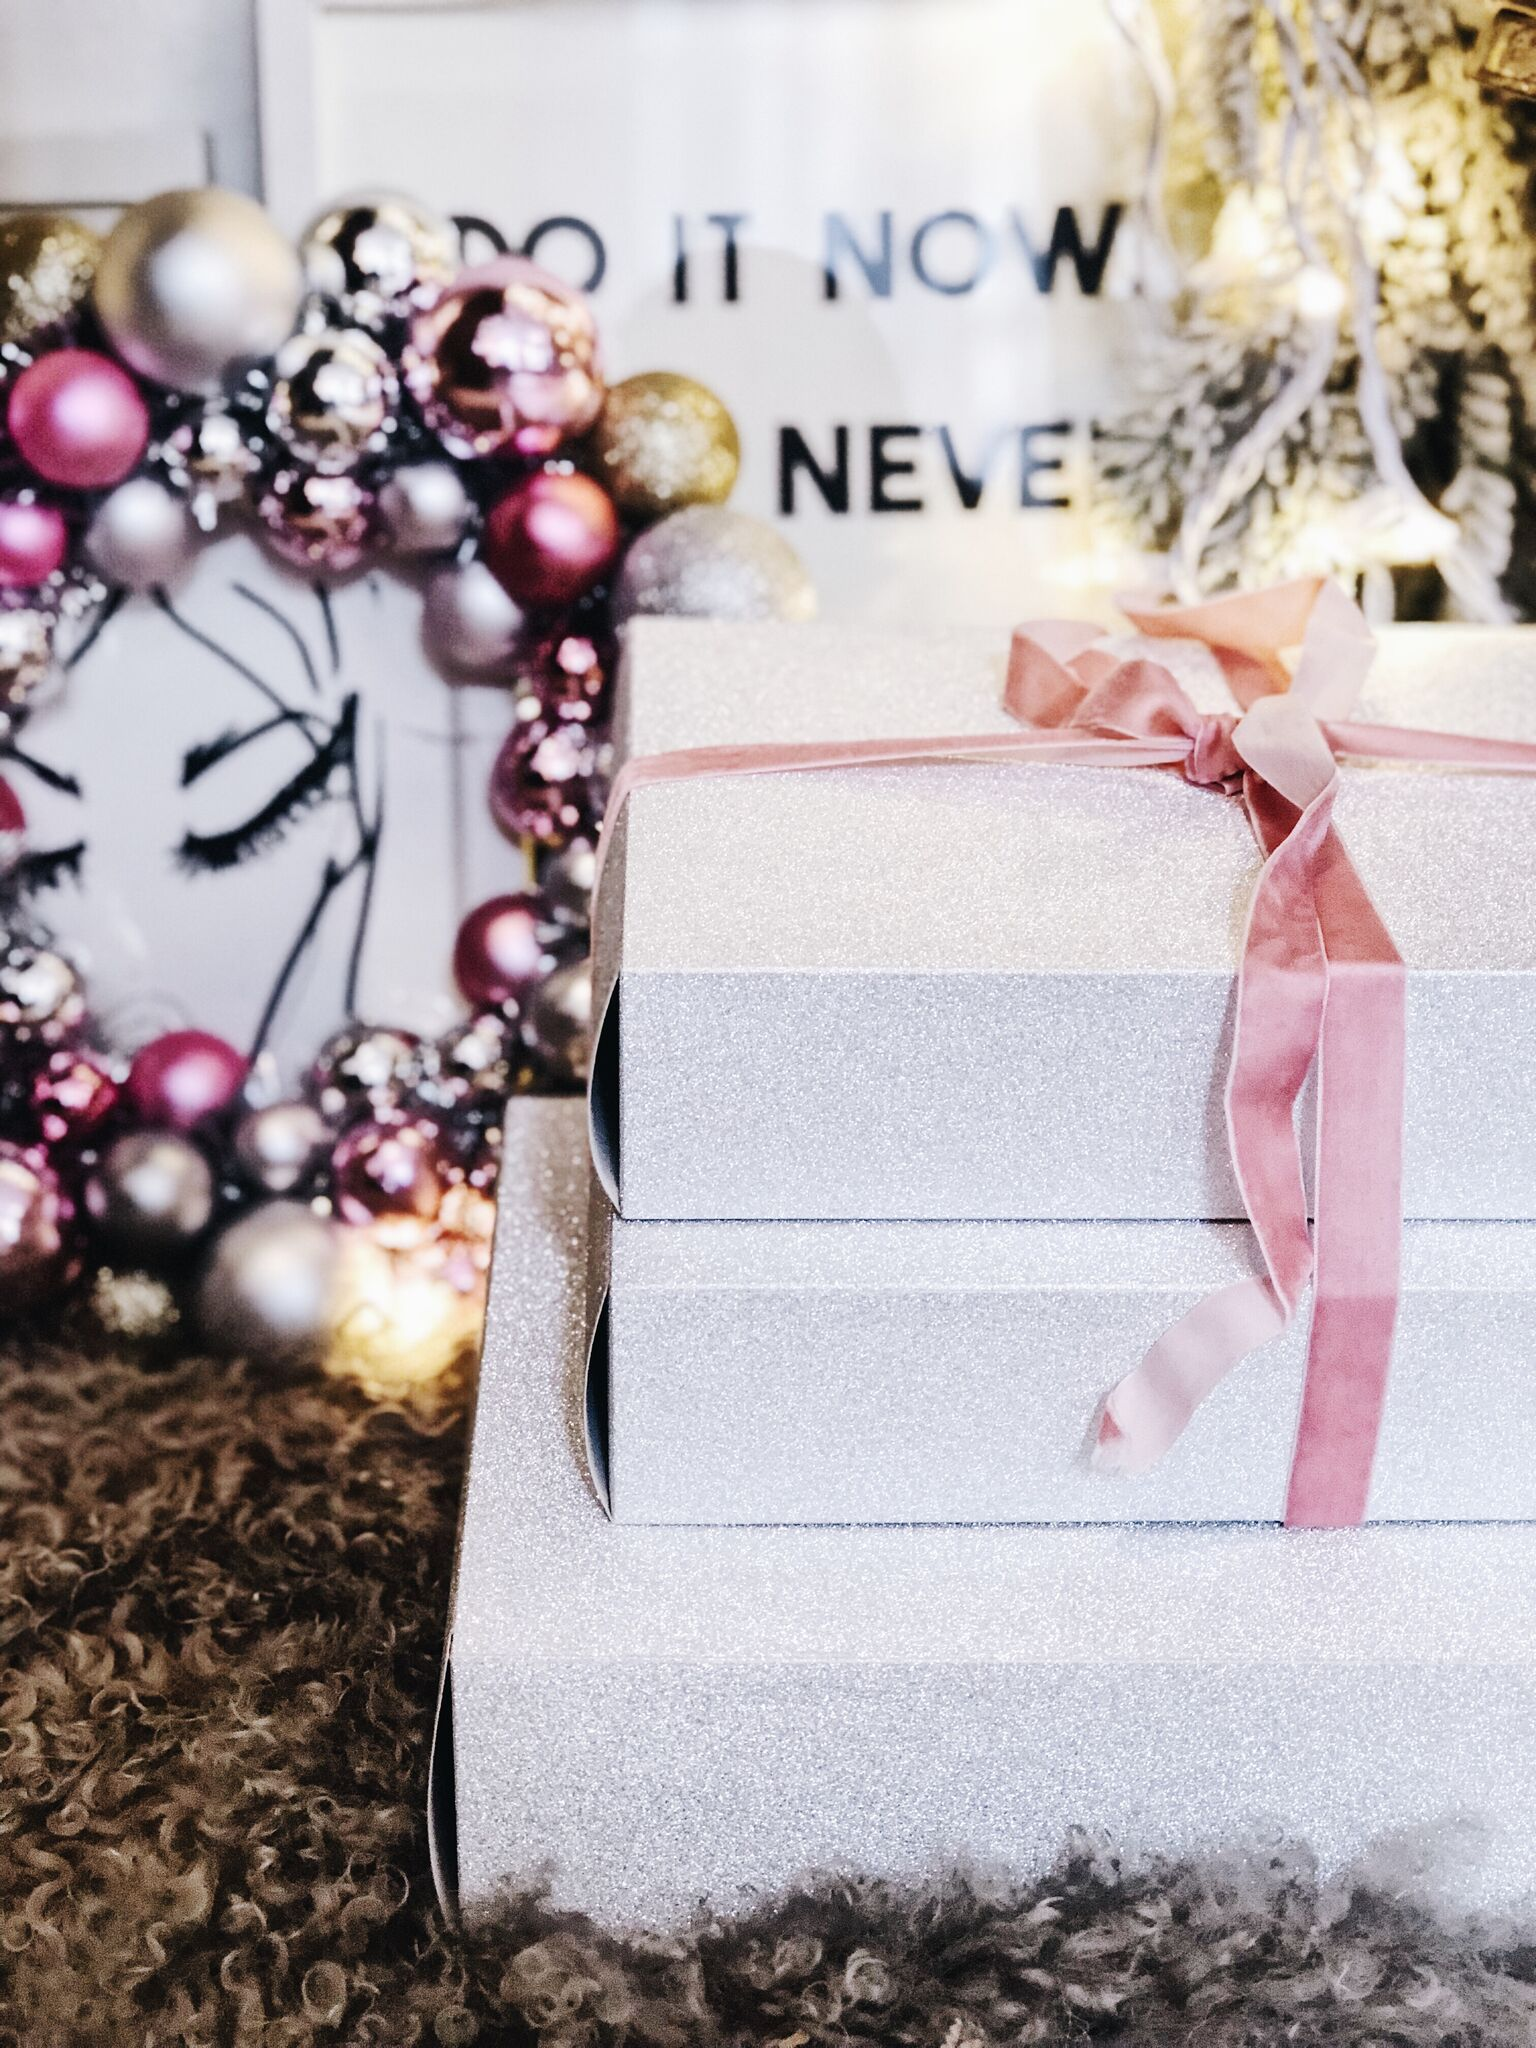 THE SUNDAY ISSUE 2K18 HOLIDAY GIFT GUIDE -